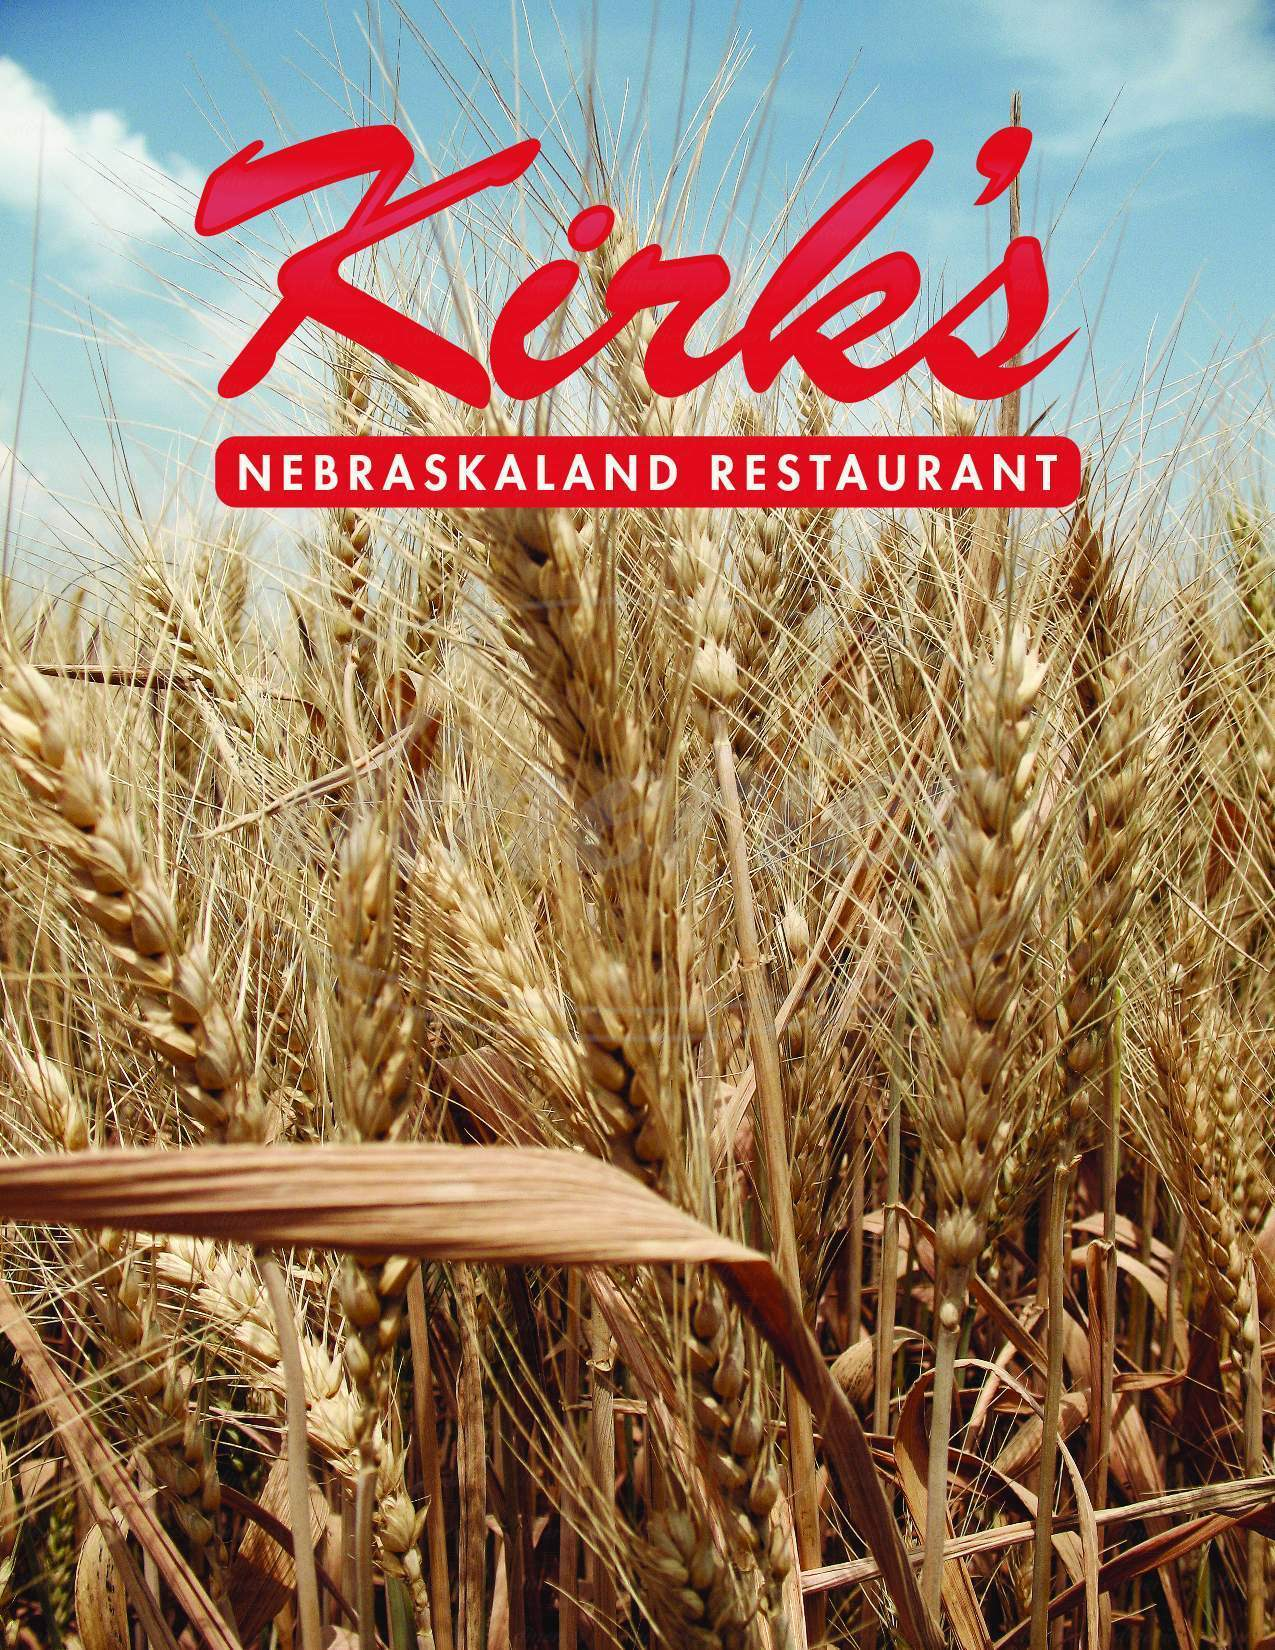 menu for Kirk's Nebraskaland Restaurant